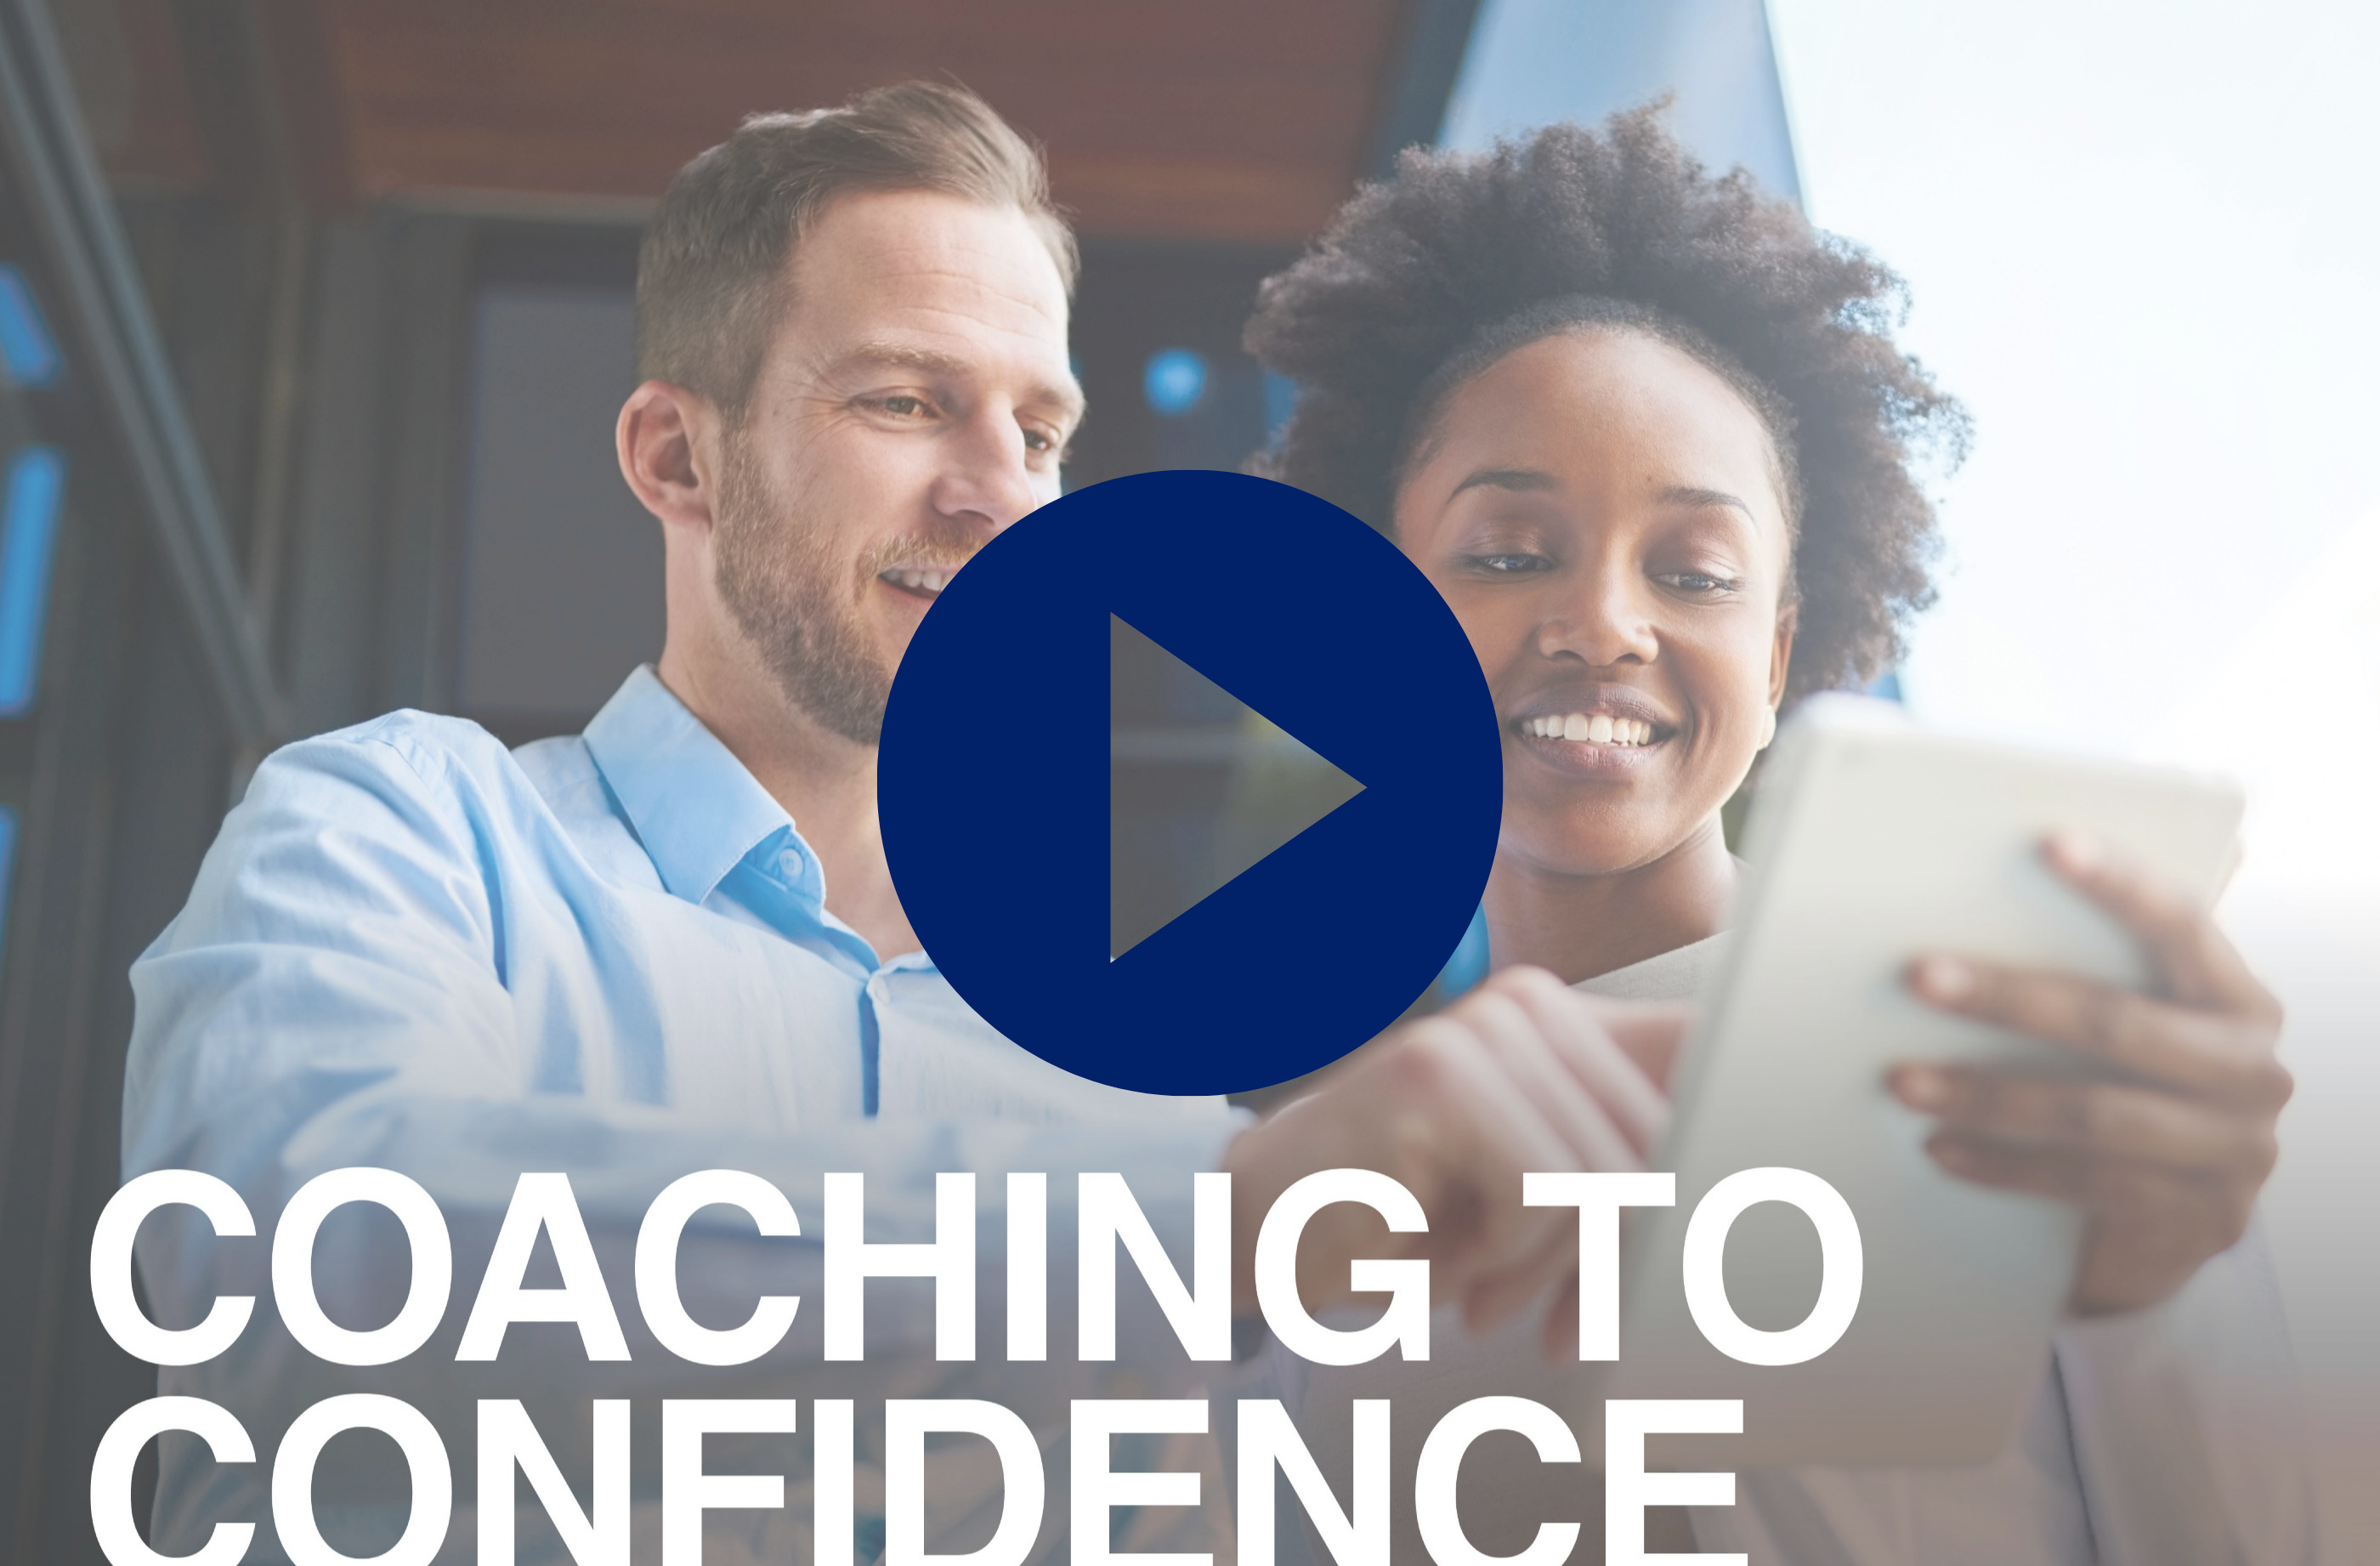 Coldwell Banker Placer County - Coaching to Confidence